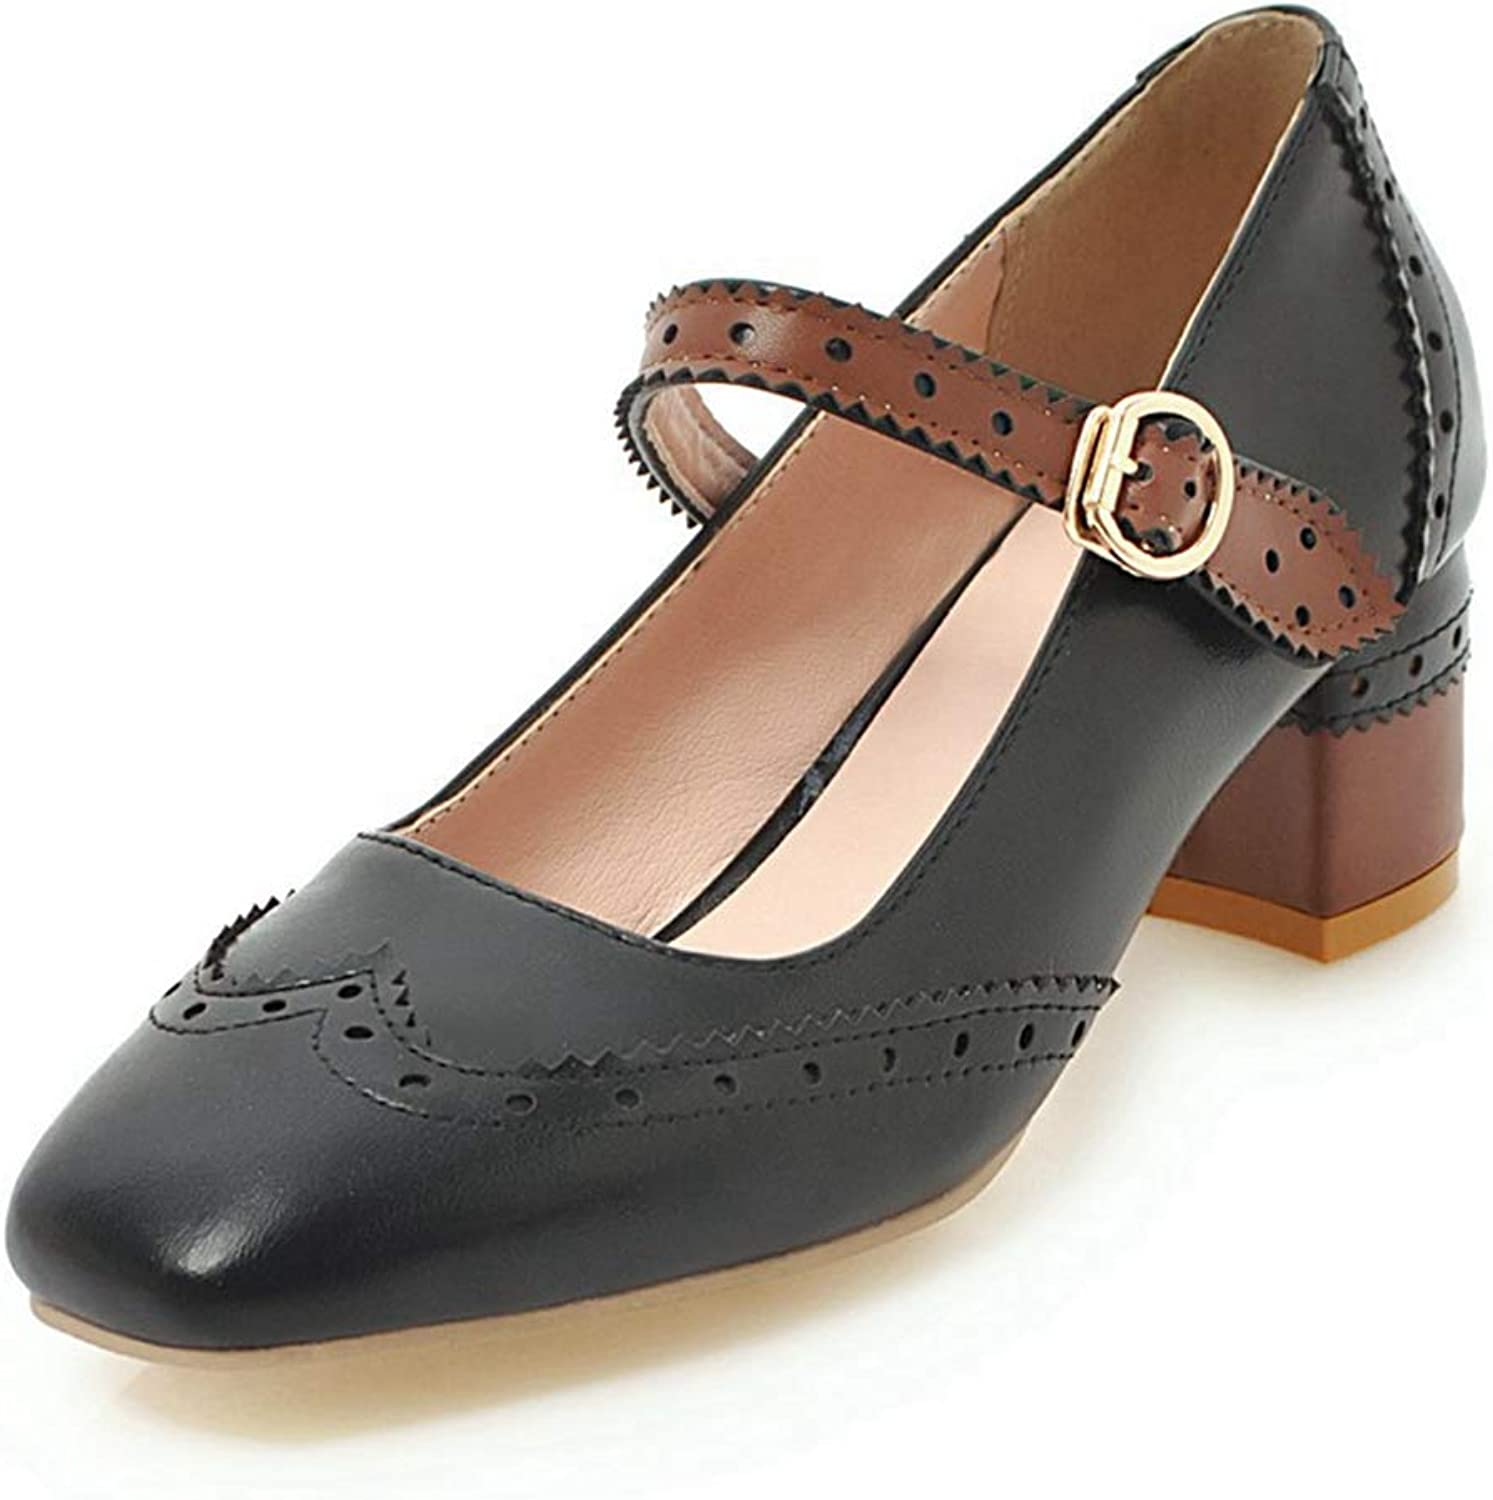 CYBLING Women's Mary Jane Oxford Pumps Retro Round Toe Ankle Strap Wing Tip Dress shoes